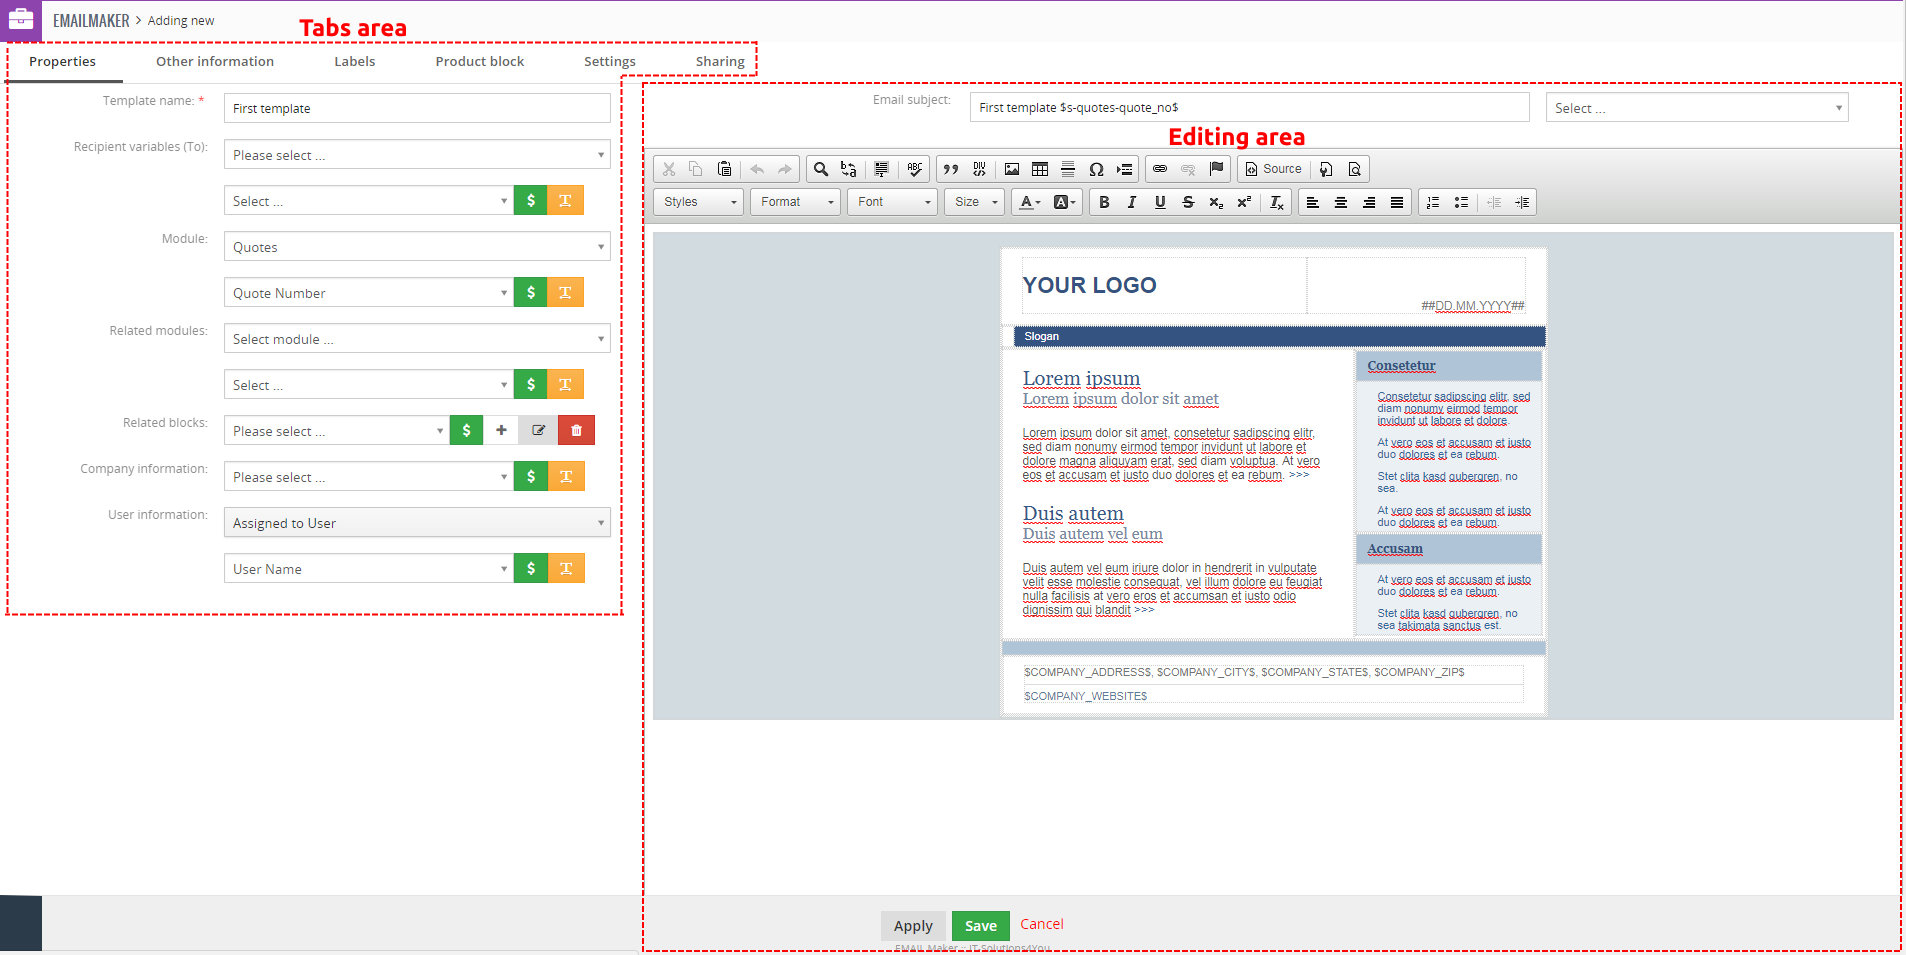 EditView of EMAIL Maker